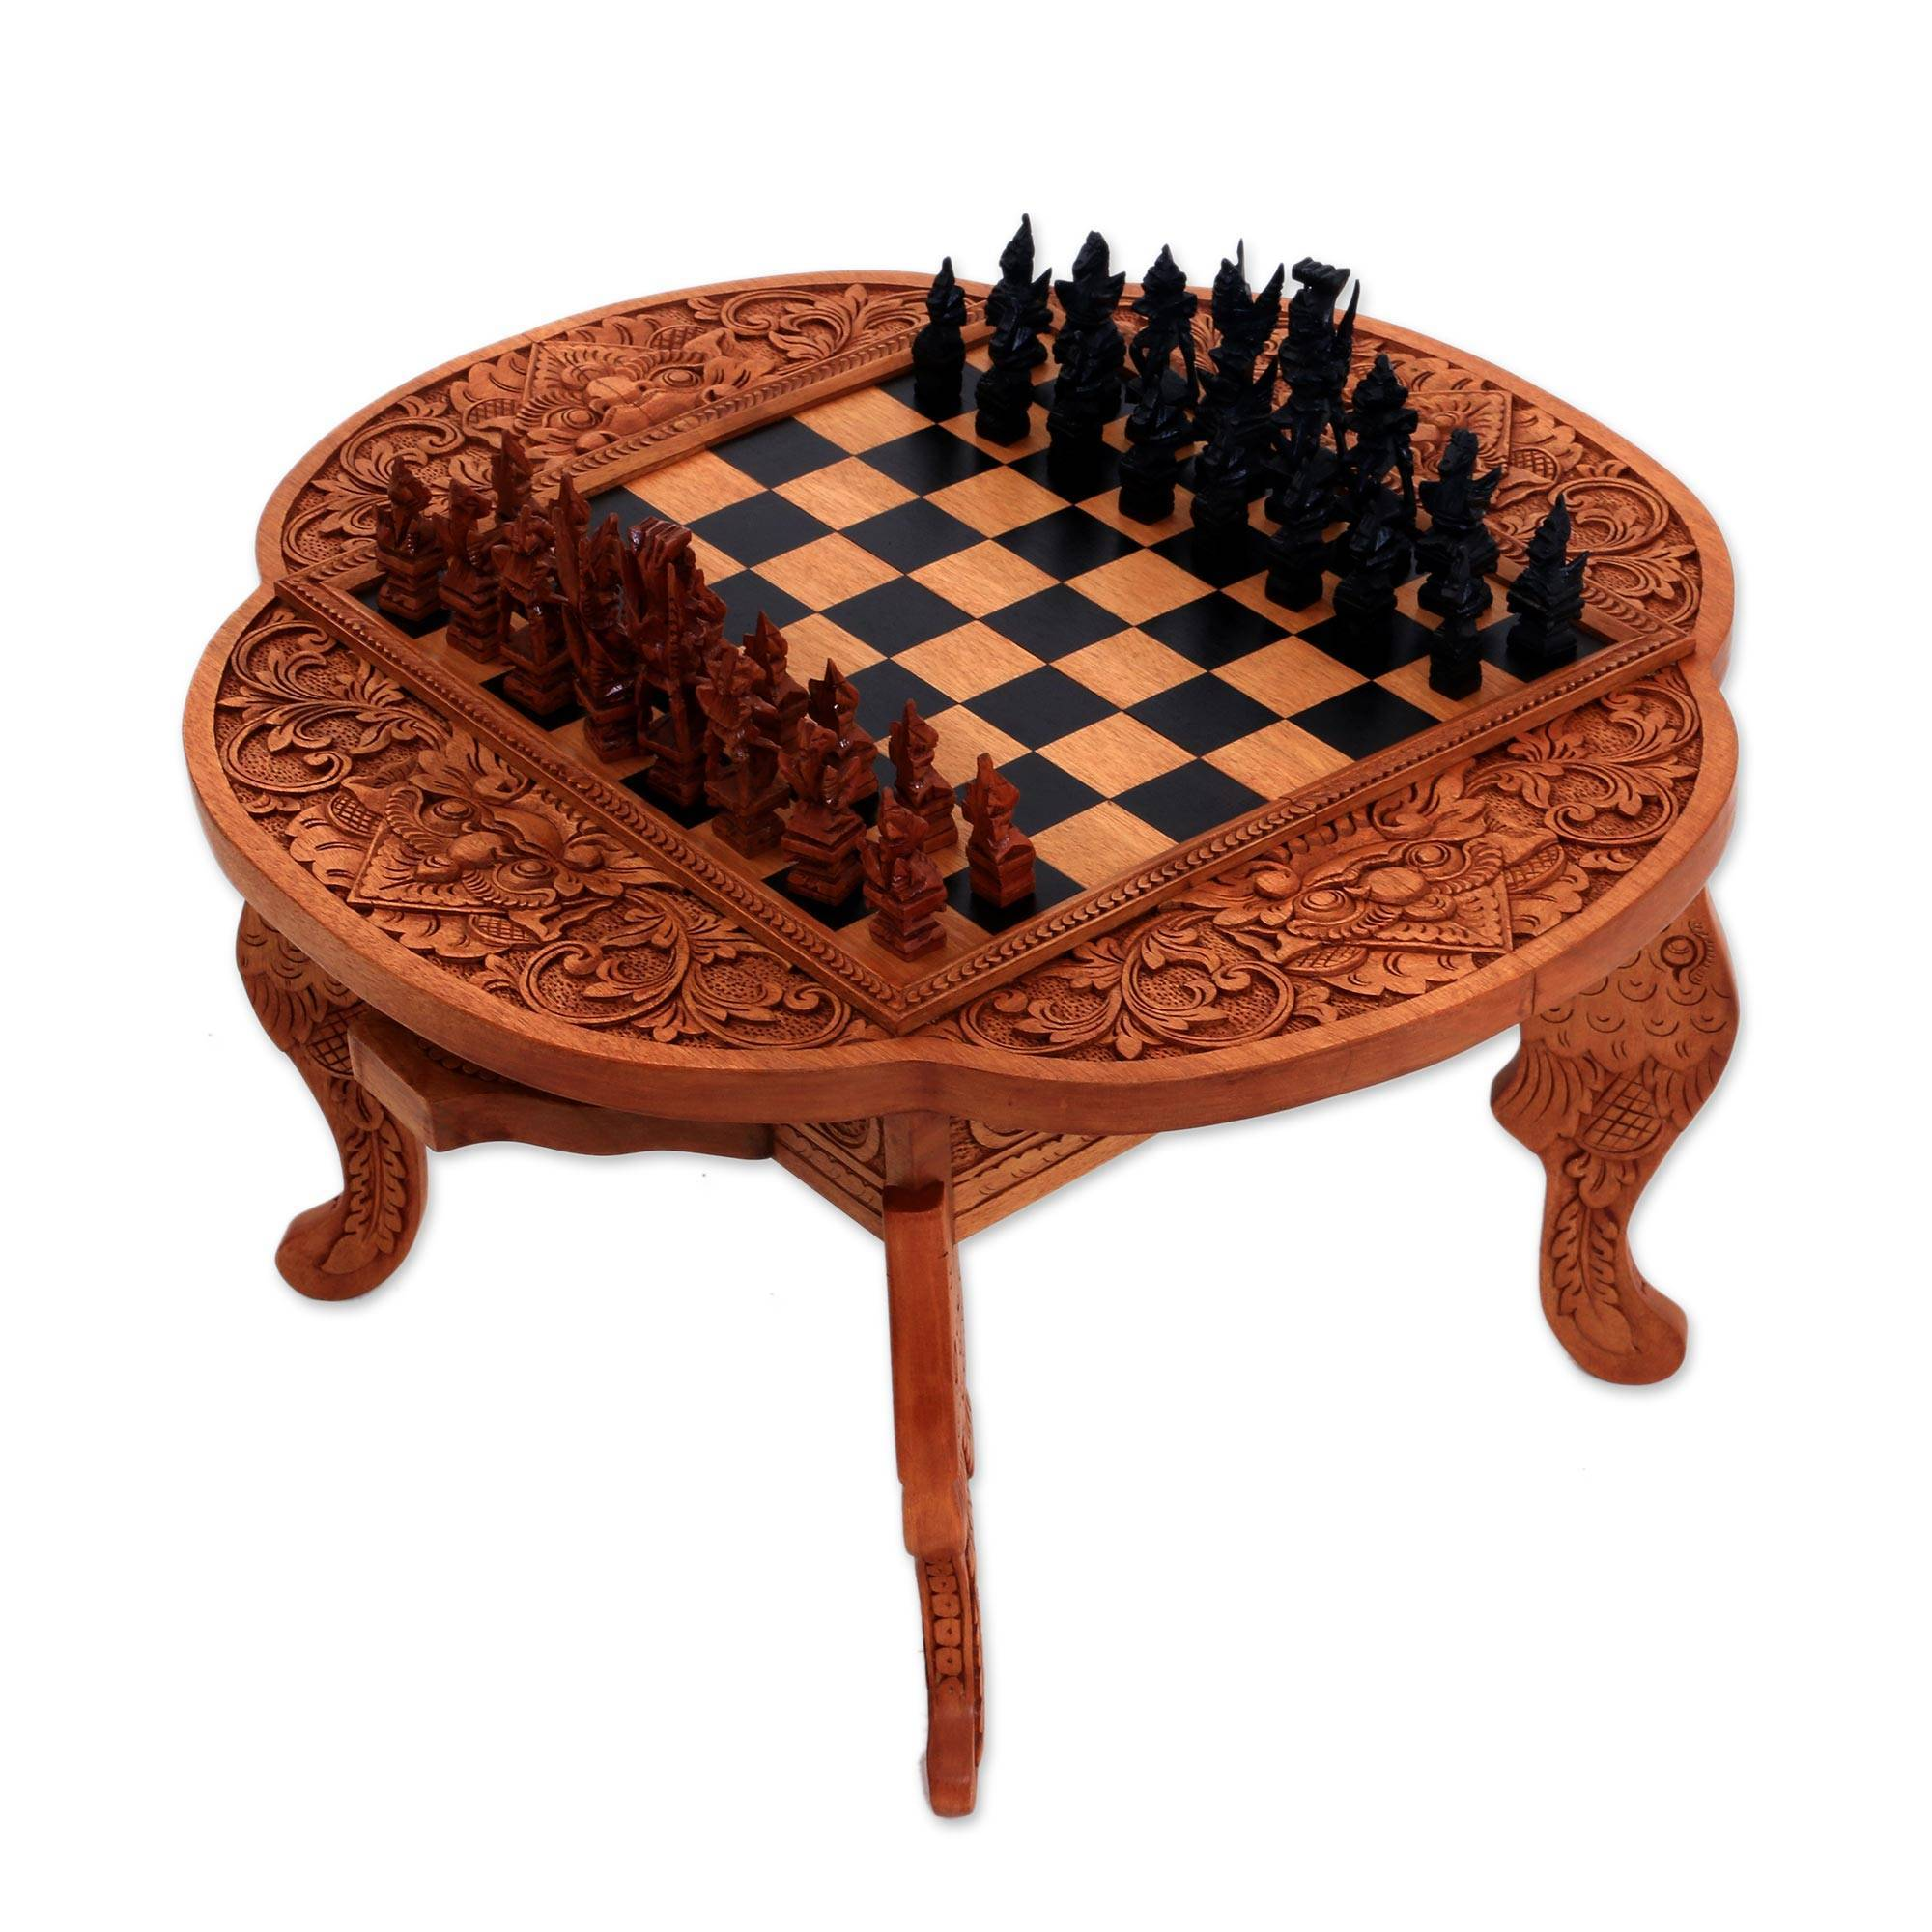 Paradise wood chess set kepalan wood -1